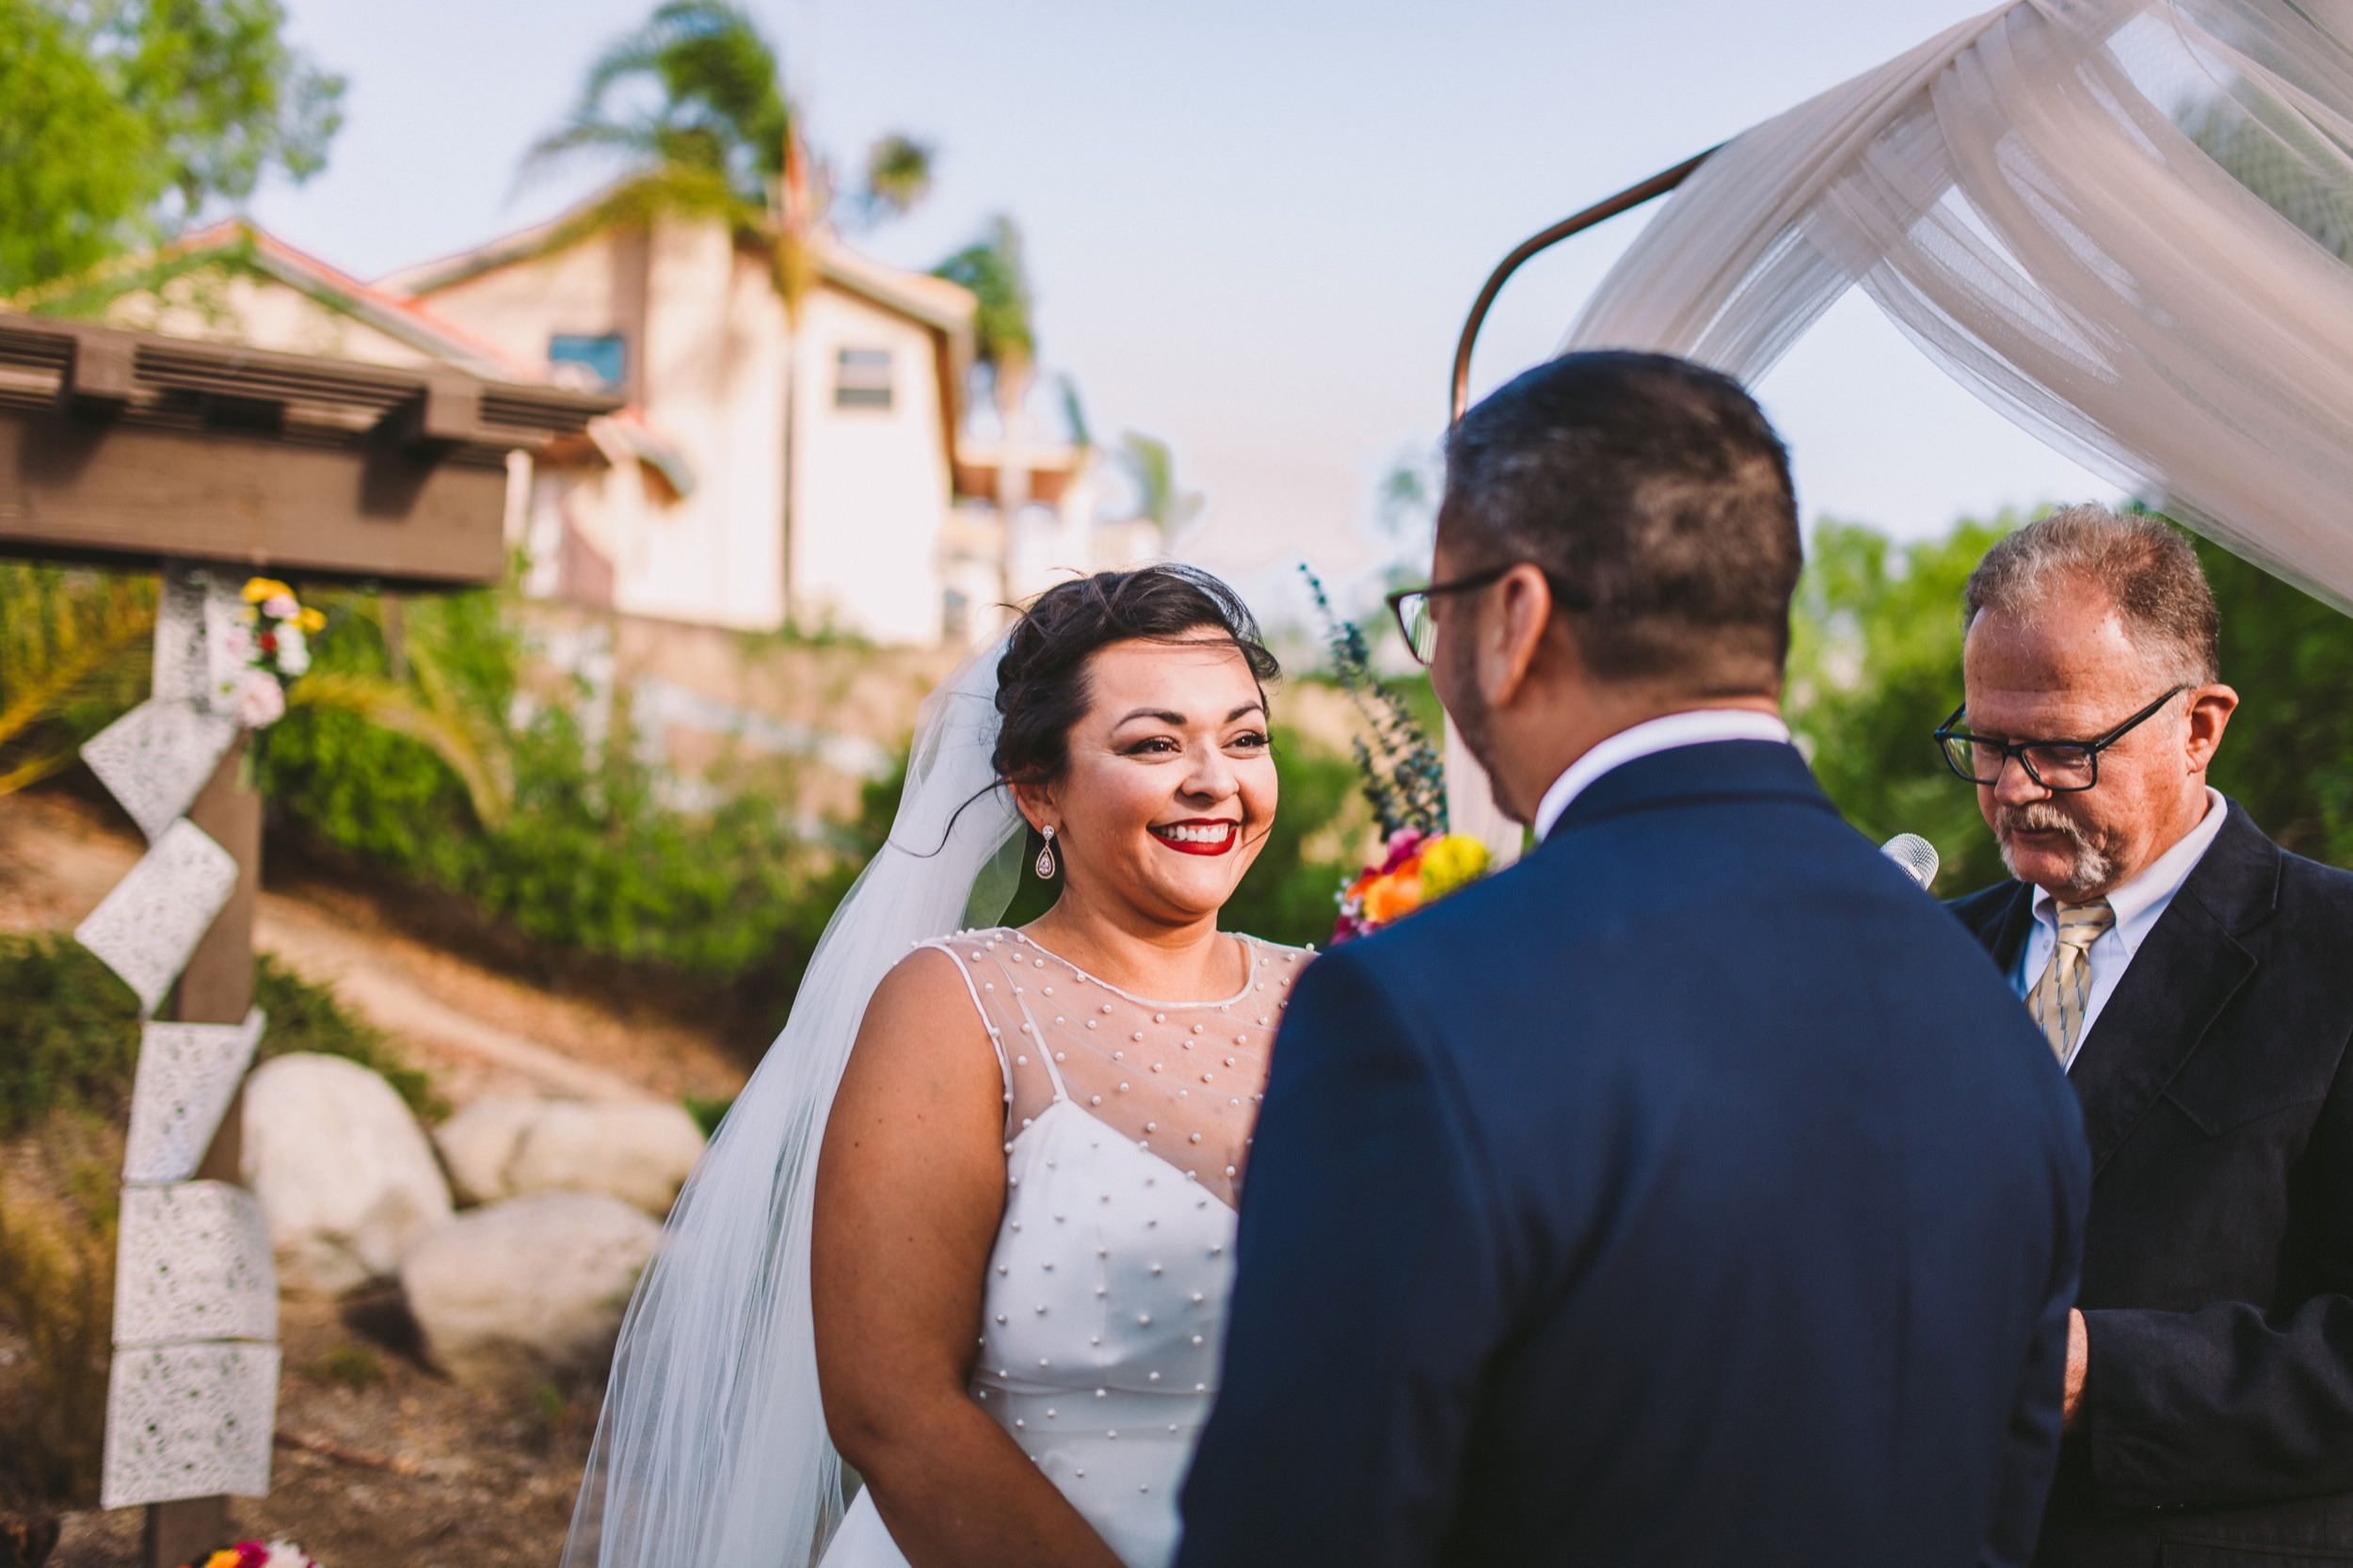 Intimate & colorful Temecula Documentary Wedding Photography-56.jpg